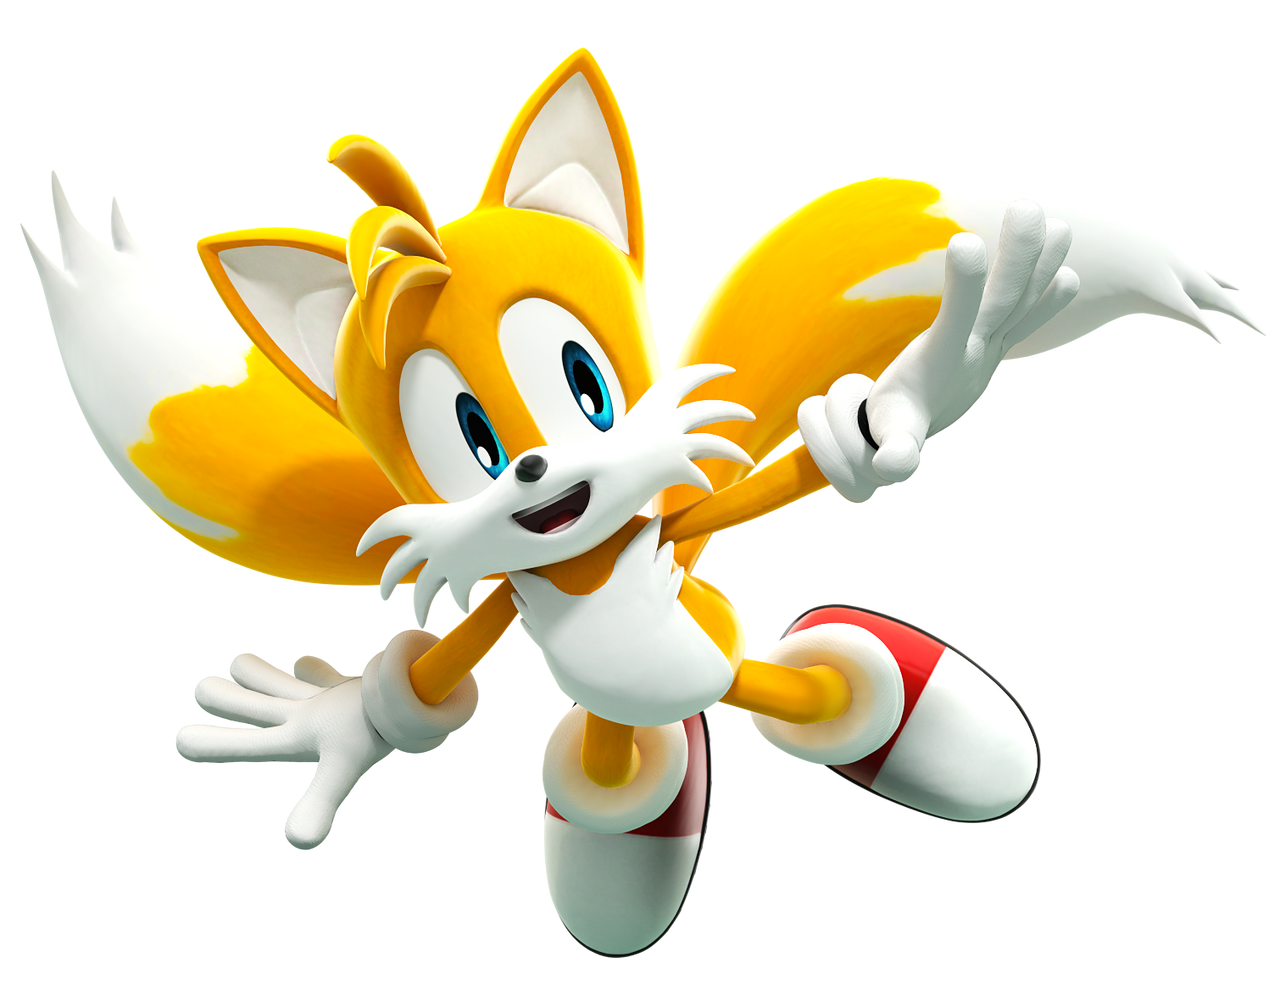 Tails Flying (Recreated Pose) Upgraded by FinnAkira on DeviantArt